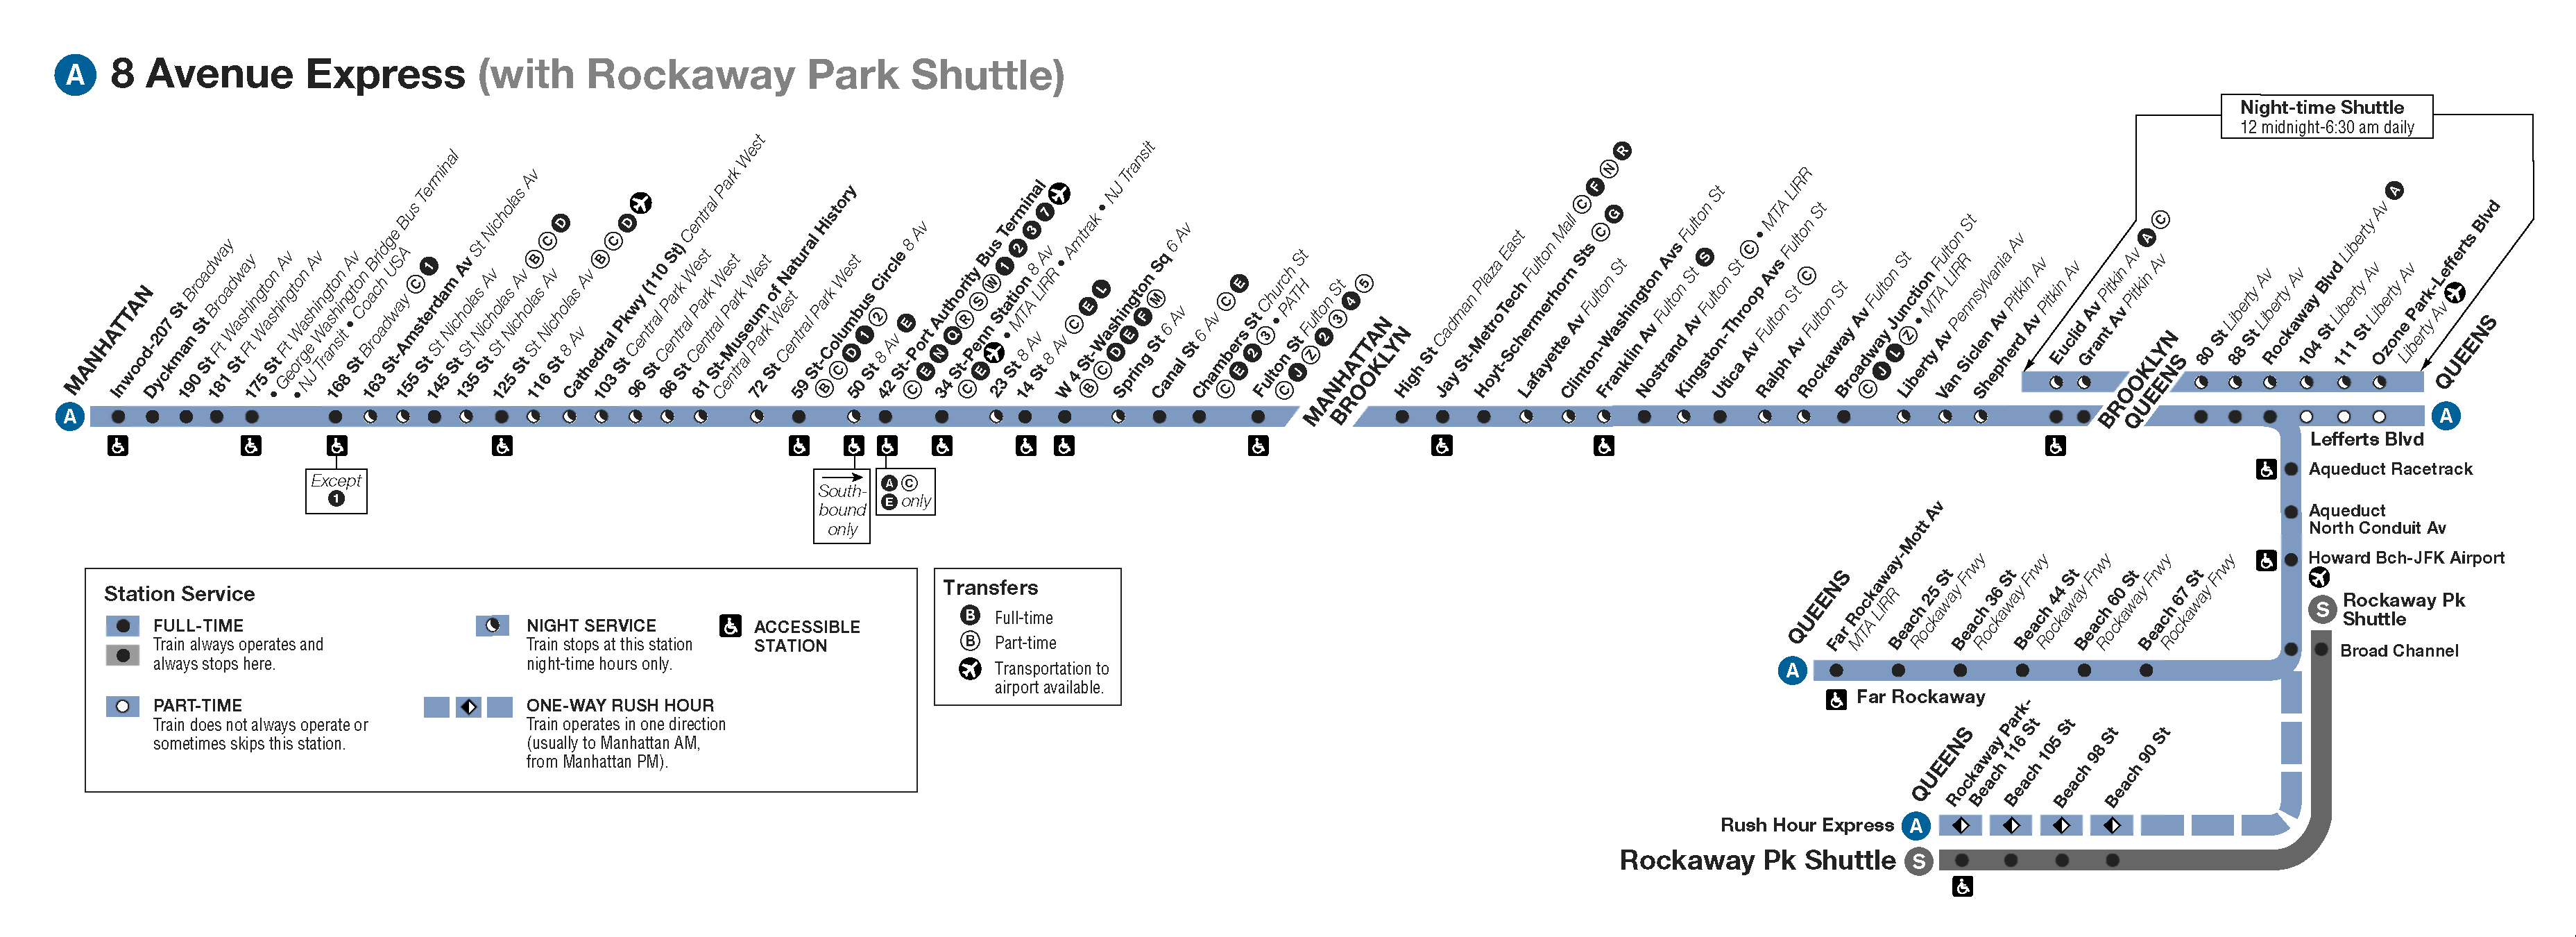 nyc-metro-route-a-8th-avenue-express-map